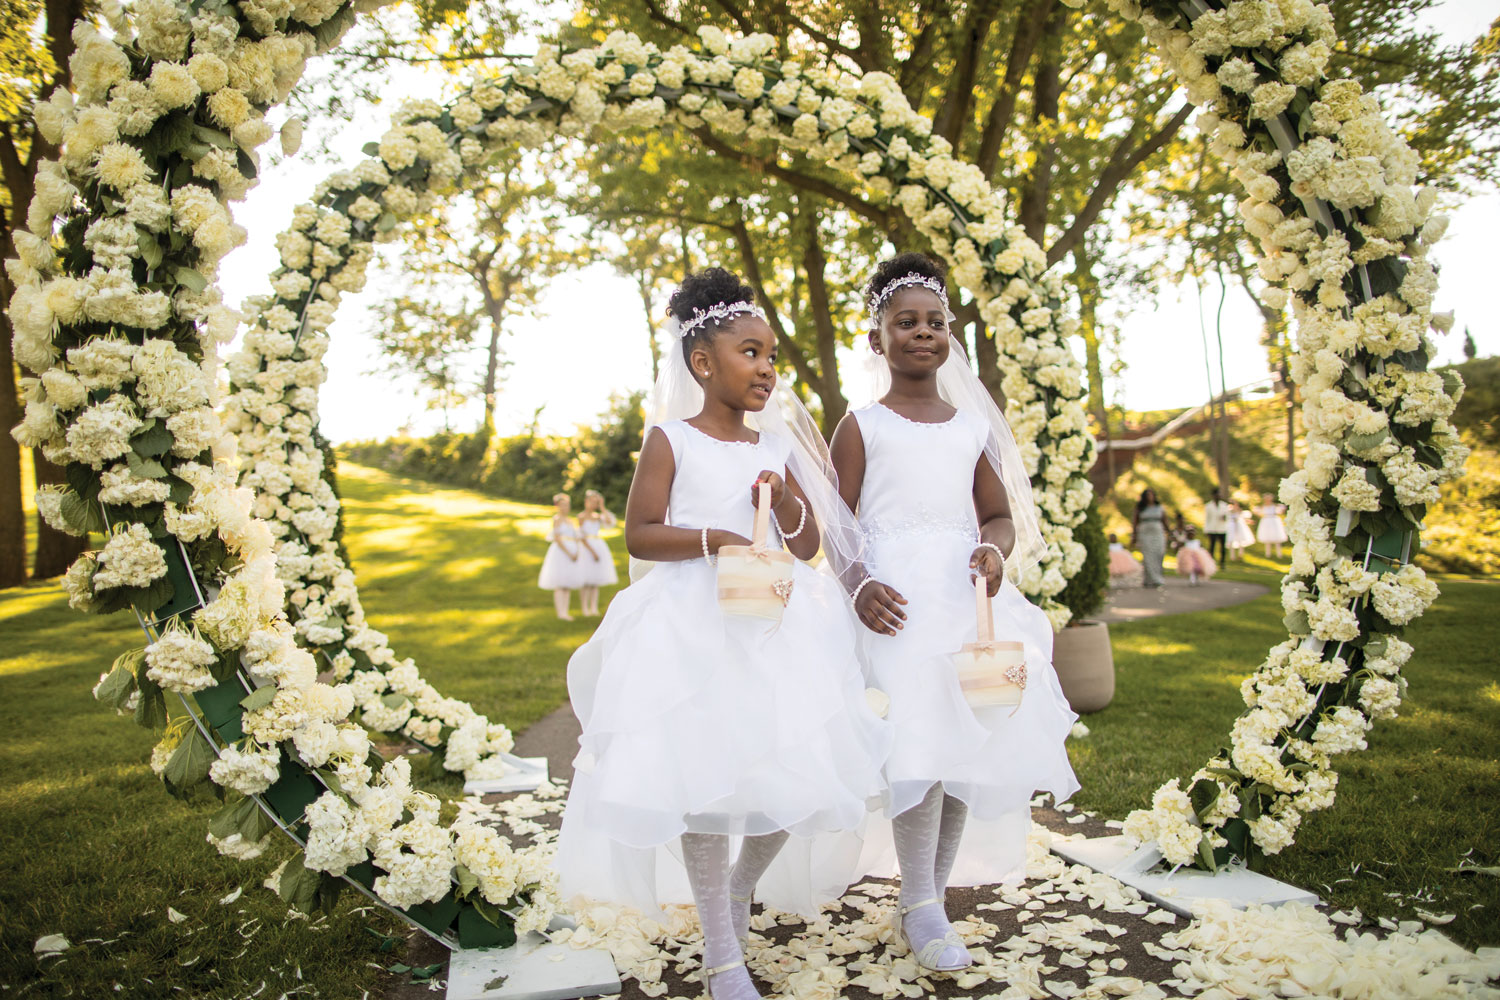 Inside Weddings magazine summer 2019 issue preview outdoor wedding ceremony african royalty flower girls white flower arches